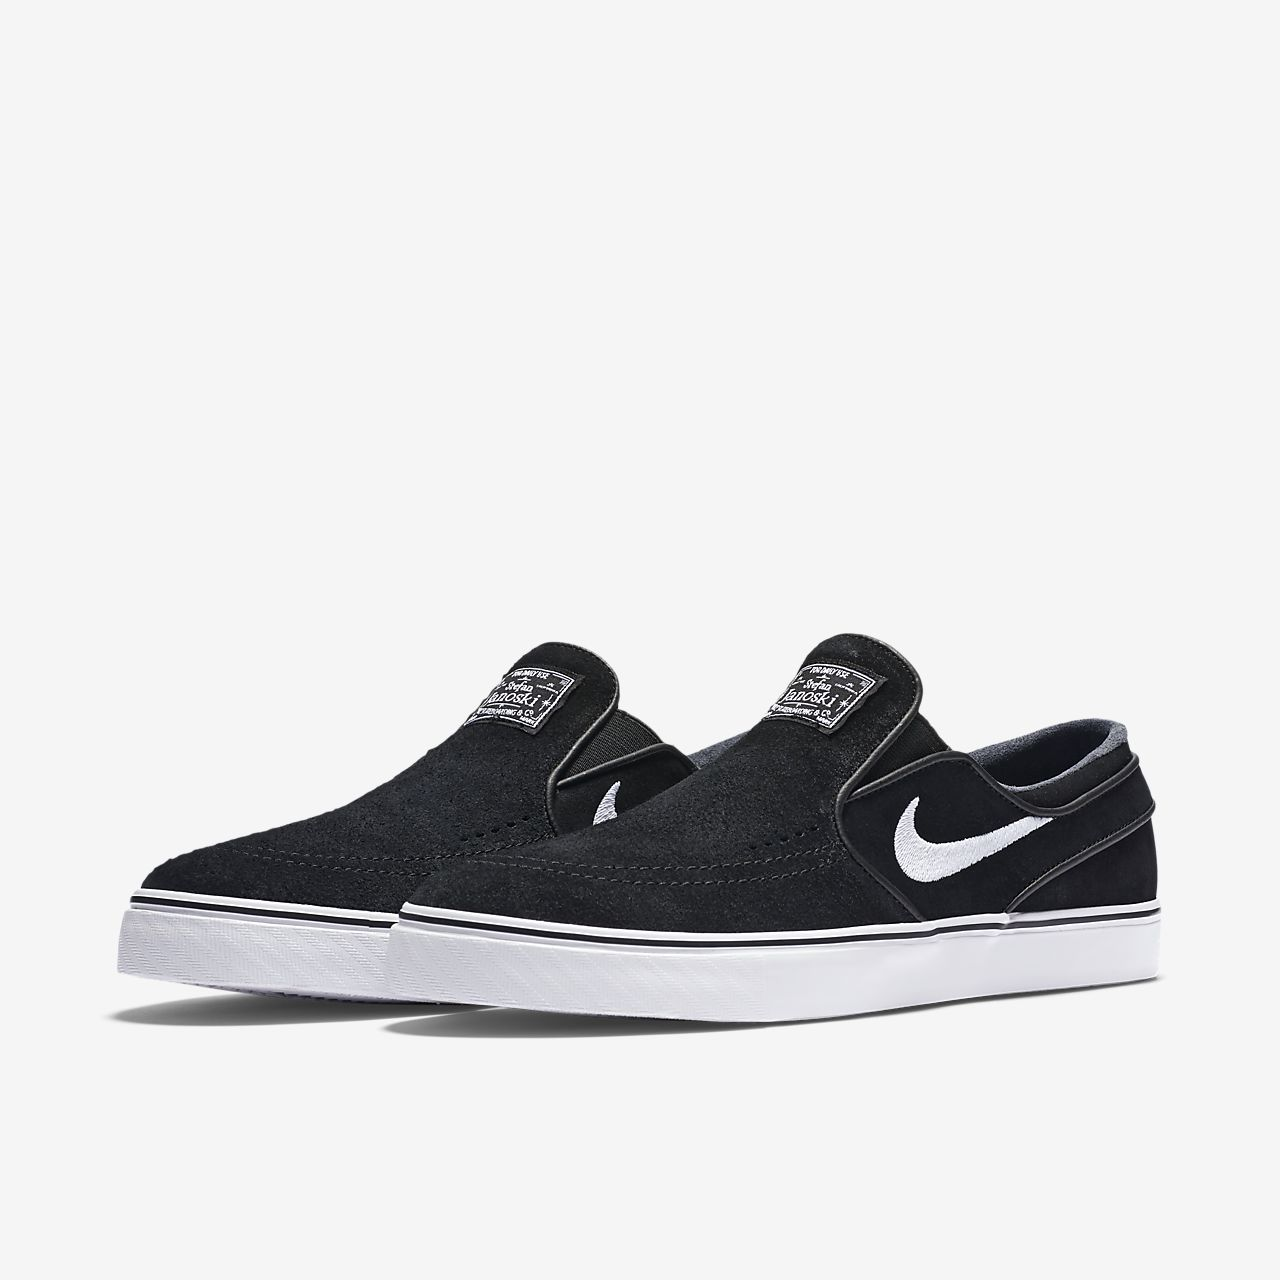 54585abd9760 Nike SB Zoom Stefan Janoski Slip-On Men s Skateboarding Shoe. Nike.com